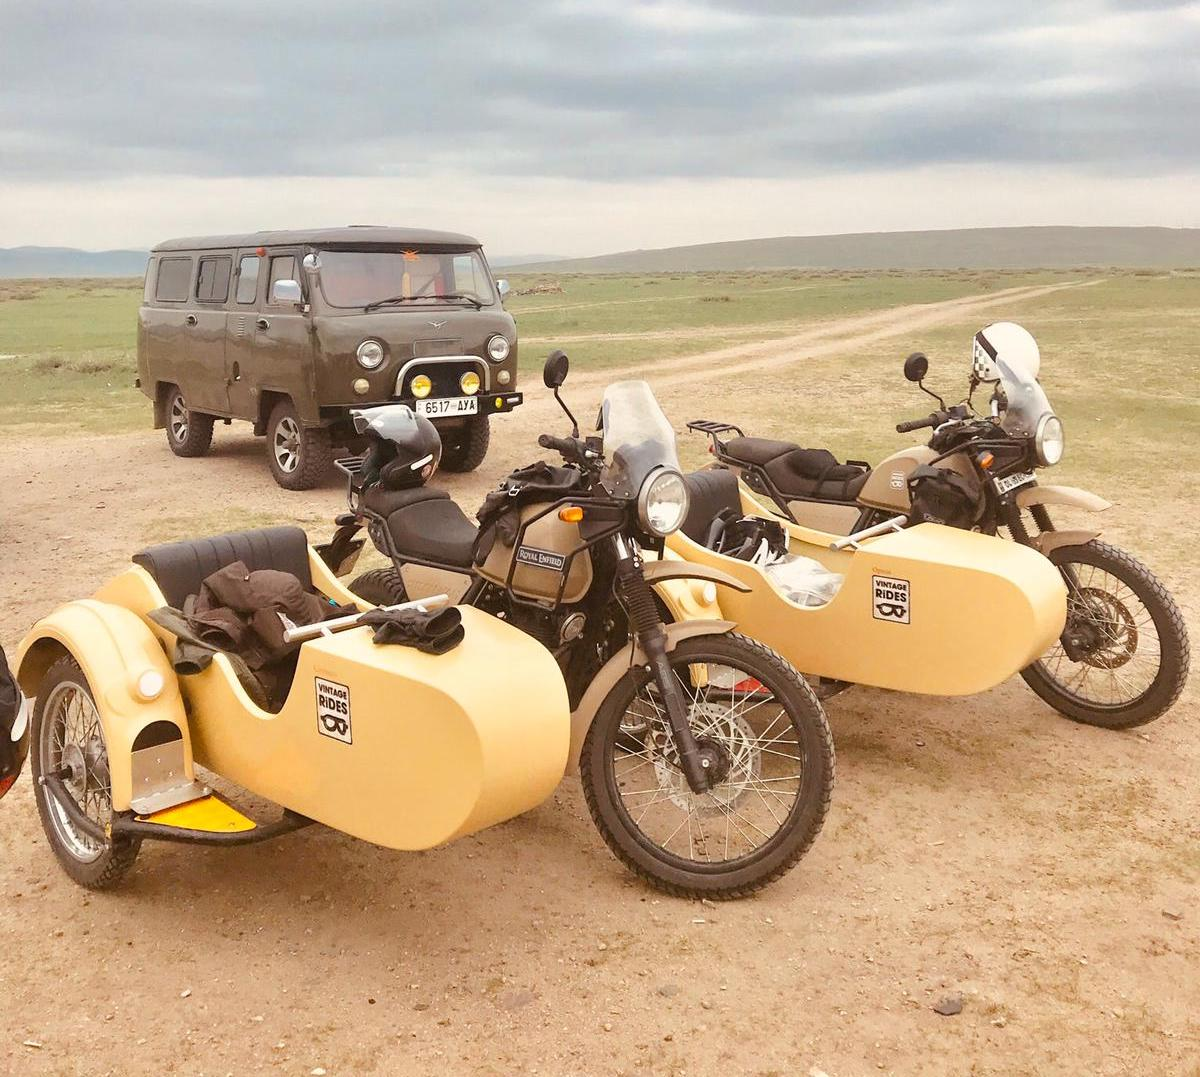 Motorcycle road trip Mongolia - East Side Story